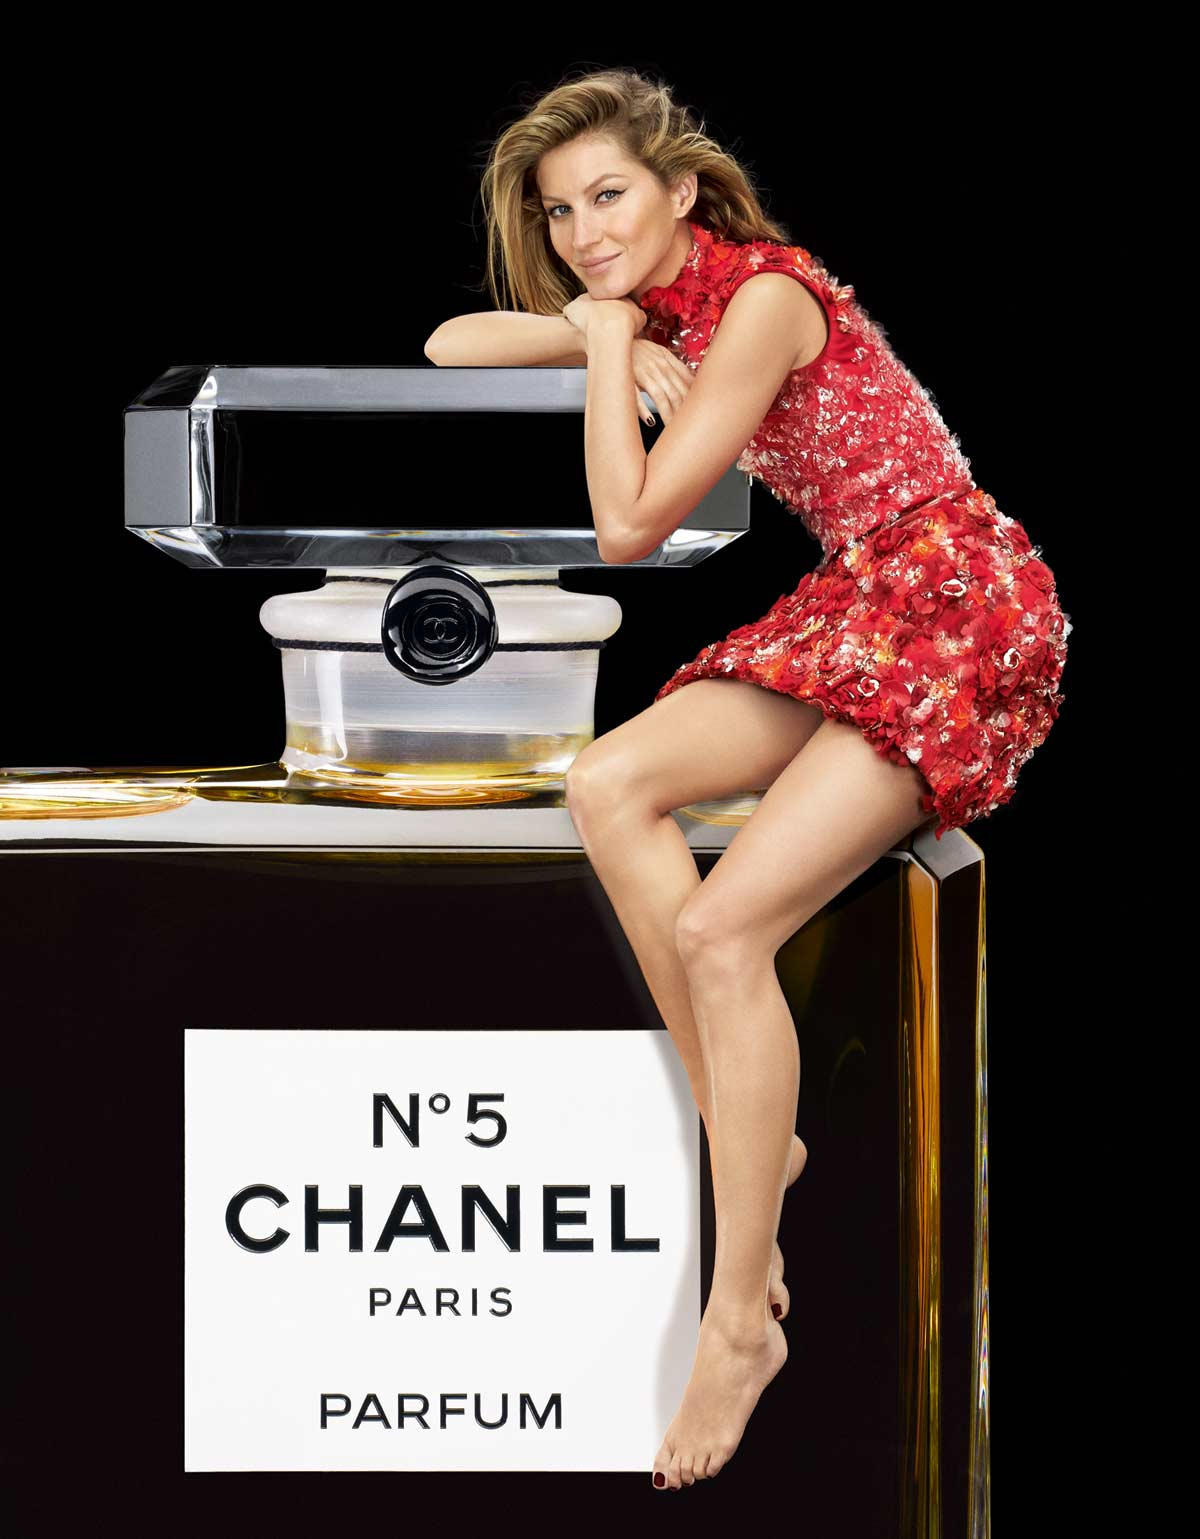 chanel no 5 a perfume story aw 2015 2016 campaign. Black Bedroom Furniture Sets. Home Design Ideas